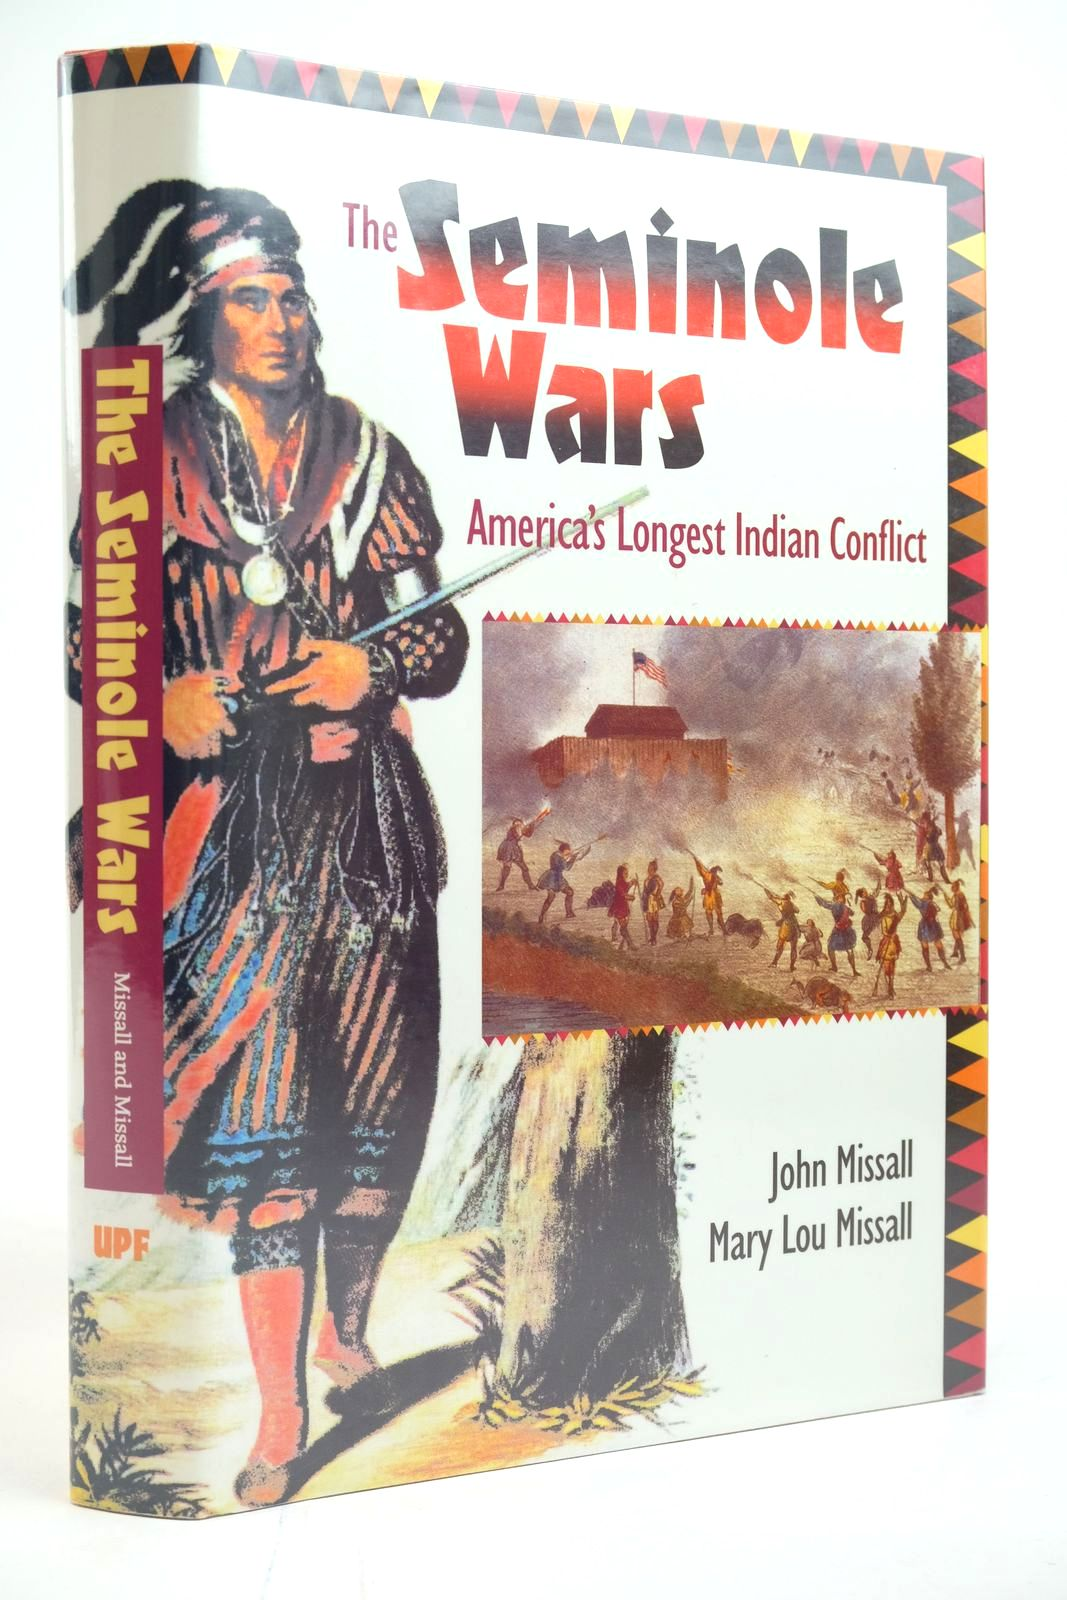 Photo of THE SEMINOLE WARS: AMERICA'S LONGEST INDIAN CONFLICT- Stock Number: 2135256